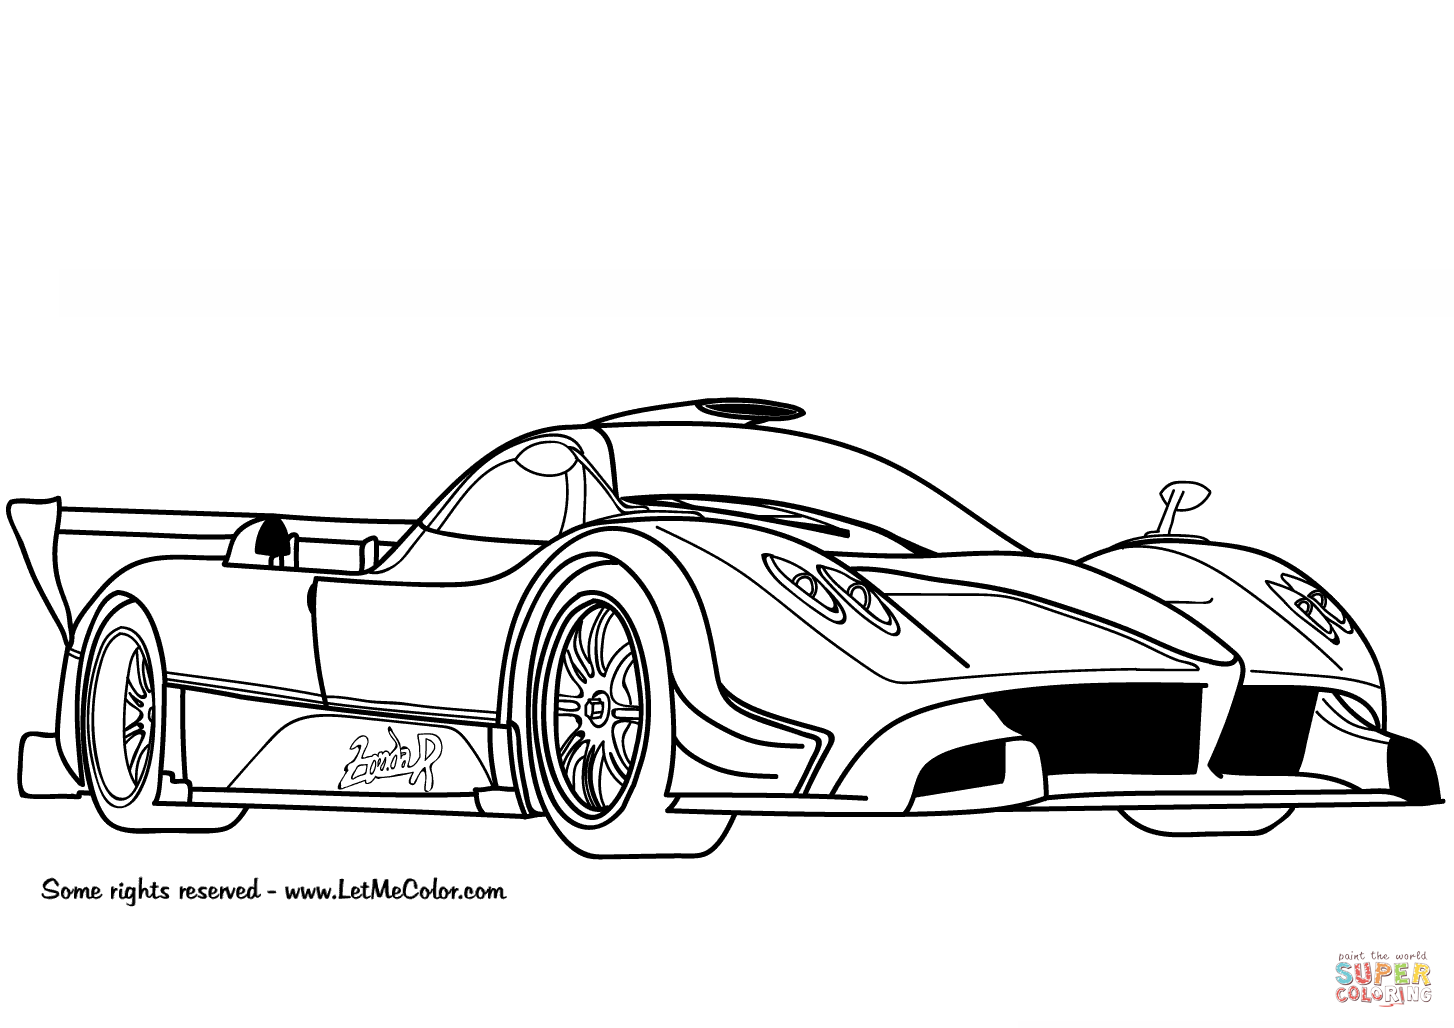 96657645 likewise How To Draw A Race Car besides Racing car line drawing additionally Detailtest besides Gp Da Austria 2016. on f1 car illustration